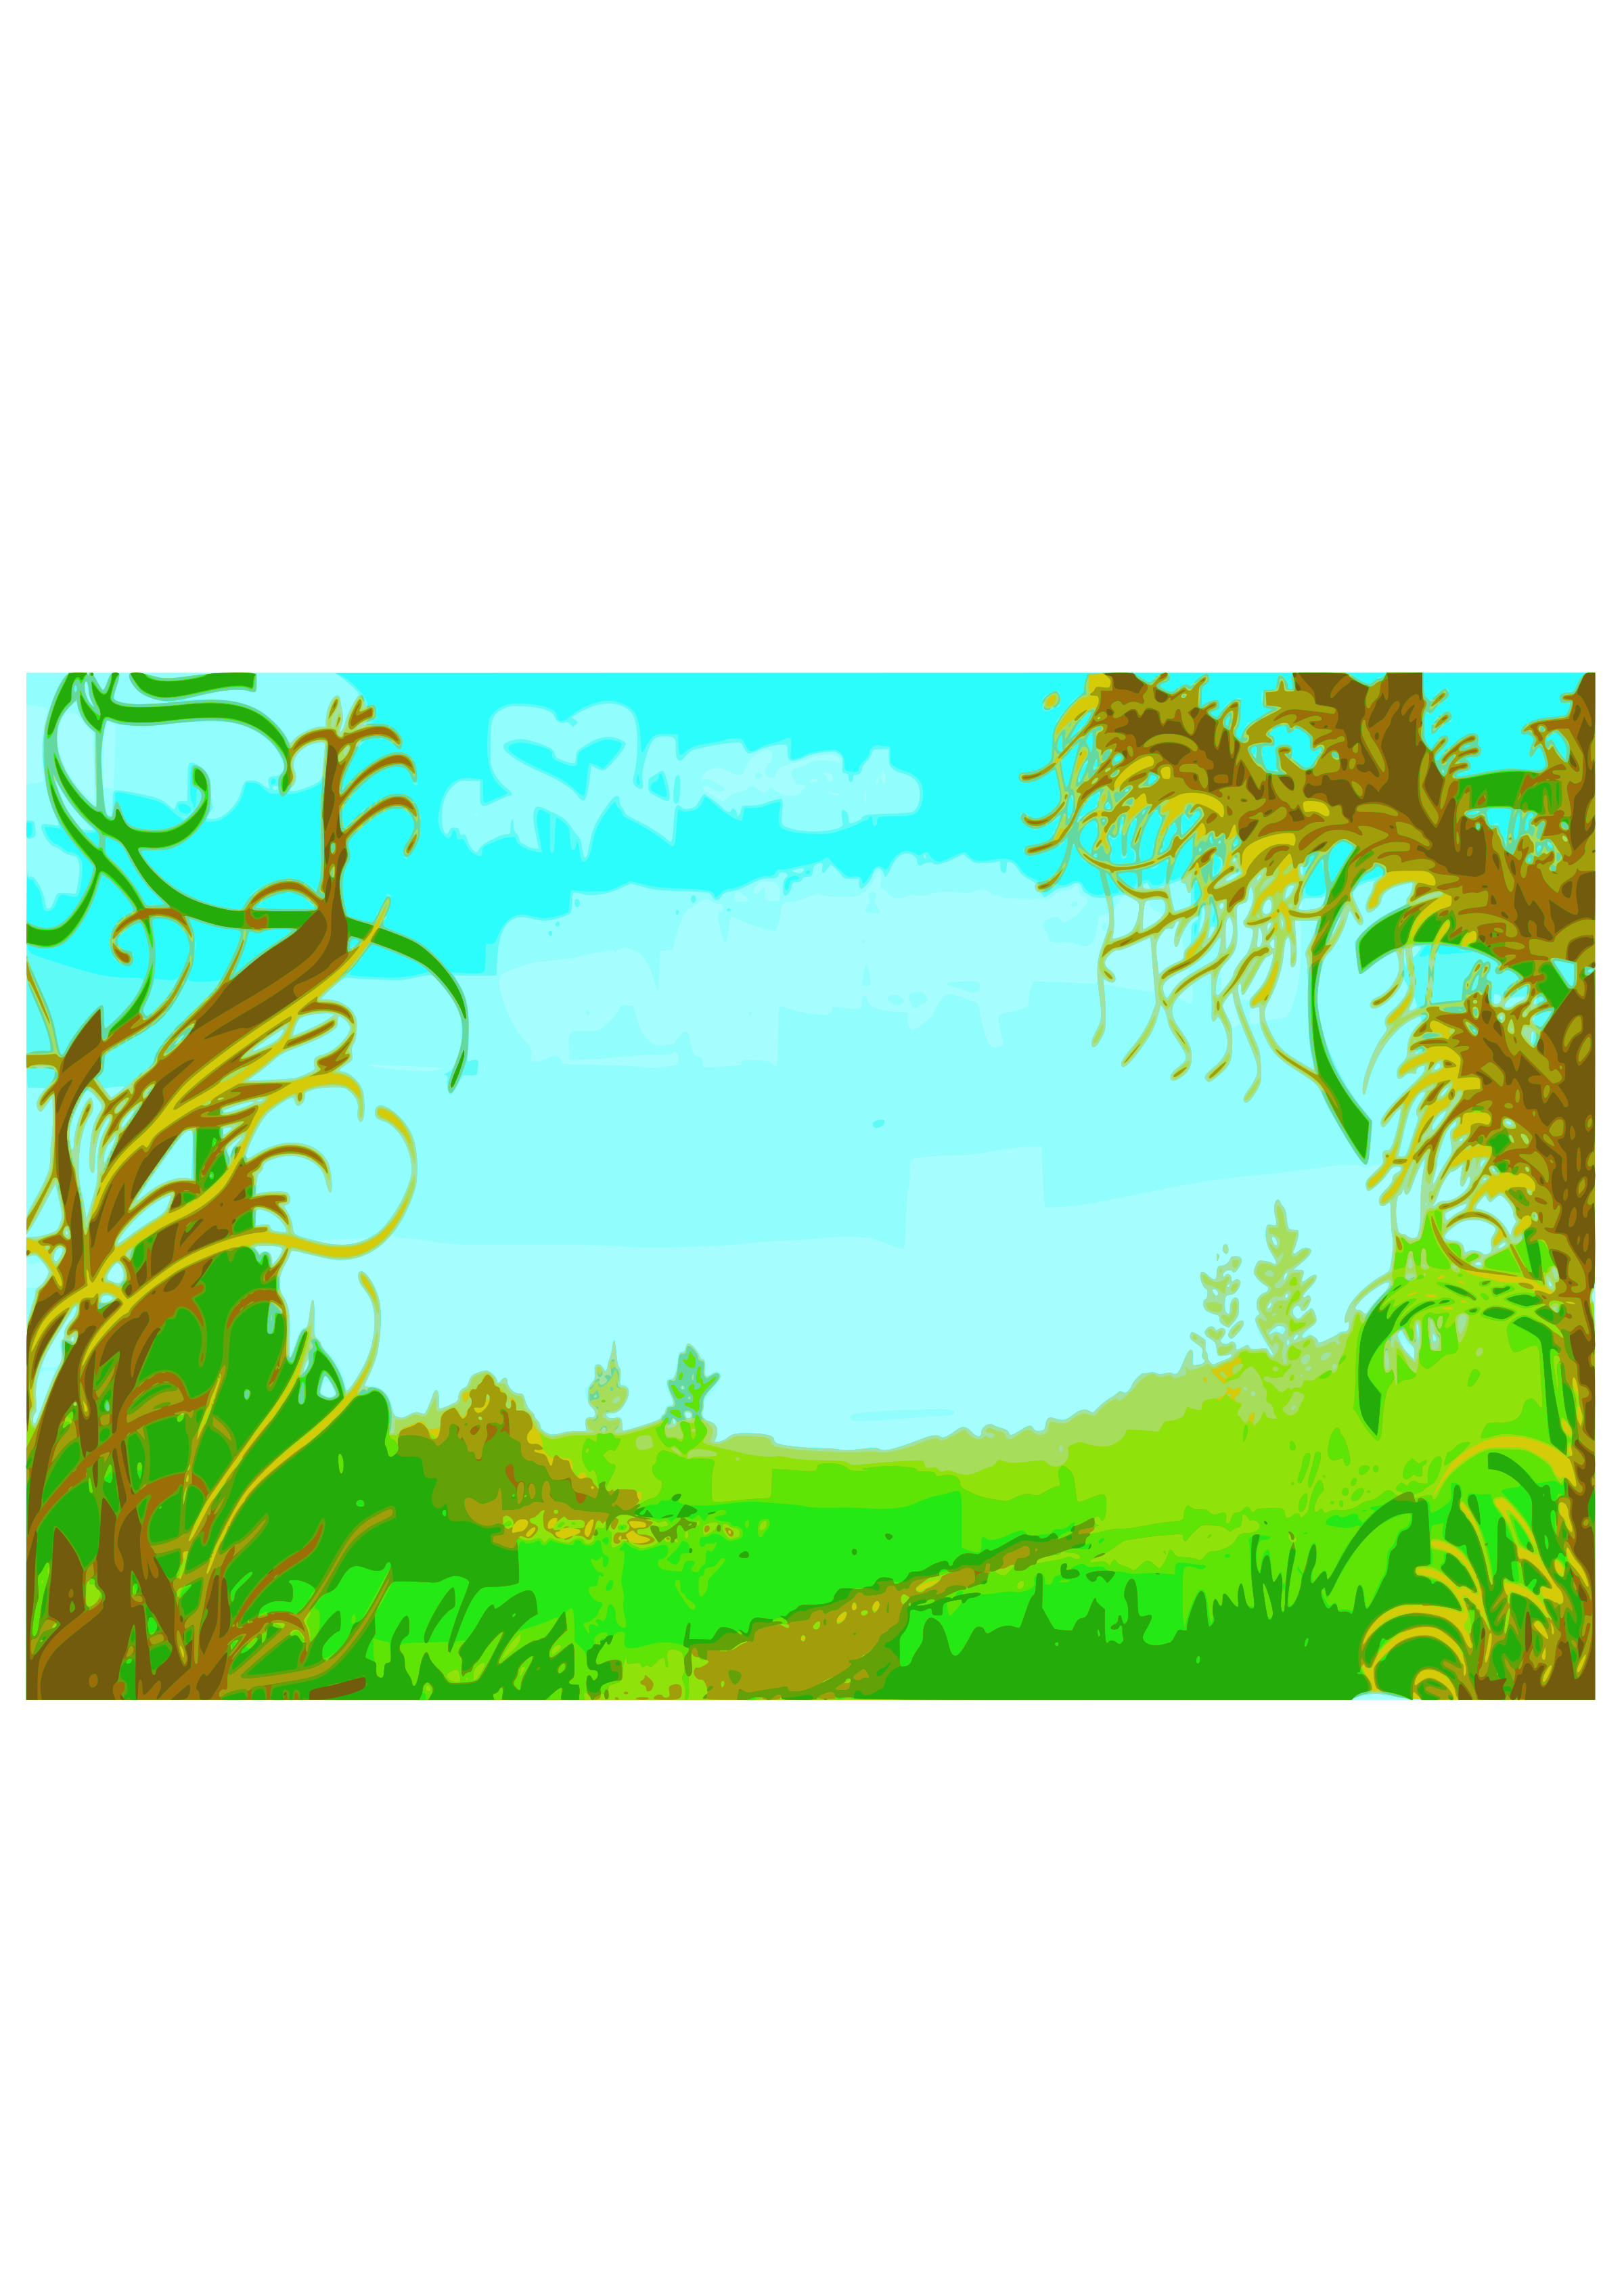 Jungle clipart nature frame. Composition color big image